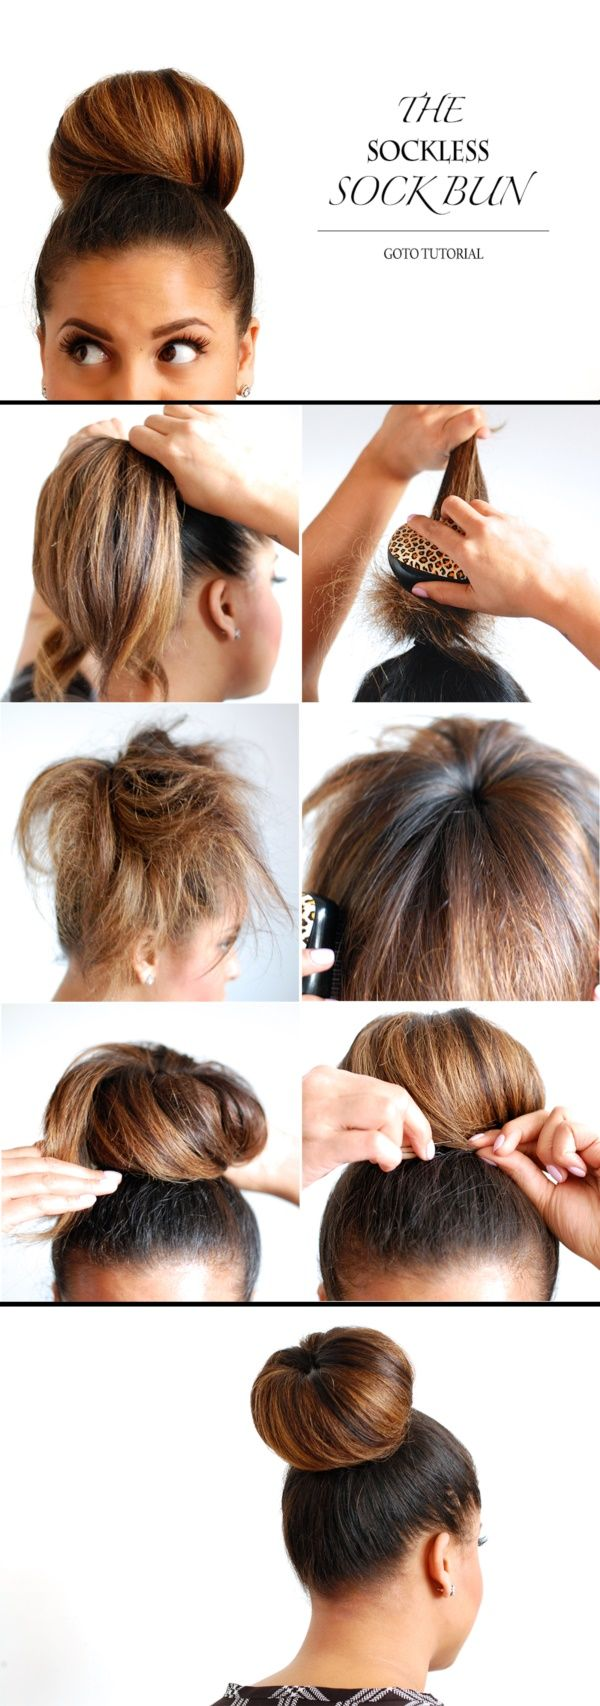 THE SOCKLESS SOCK BUN | HOW TO MAKE A SOCK BUN | TUTORIALS TO MAKE SOCK BUN | STEP BY STEP TUTORIALS FOR SOCK BUN | How to Make a Sock Bun: 18 Step by Step Tutorials